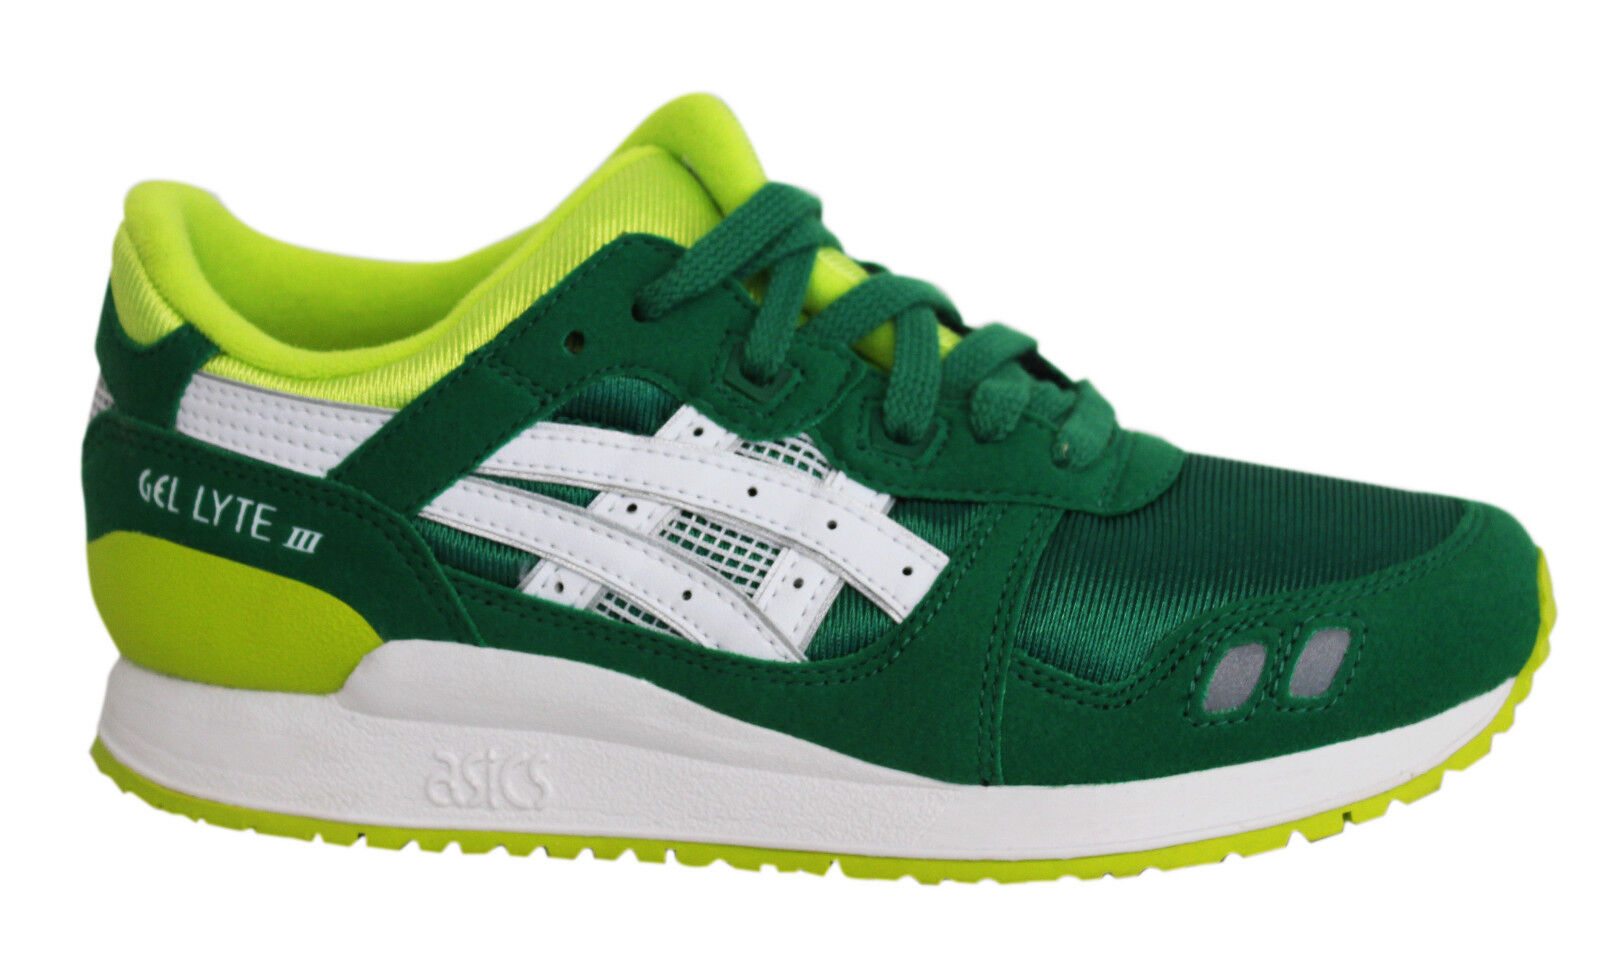 852912141676 Asics Gel-Lyte III GS Lace Up Green White Junior Kids Trainers C5A4N ...